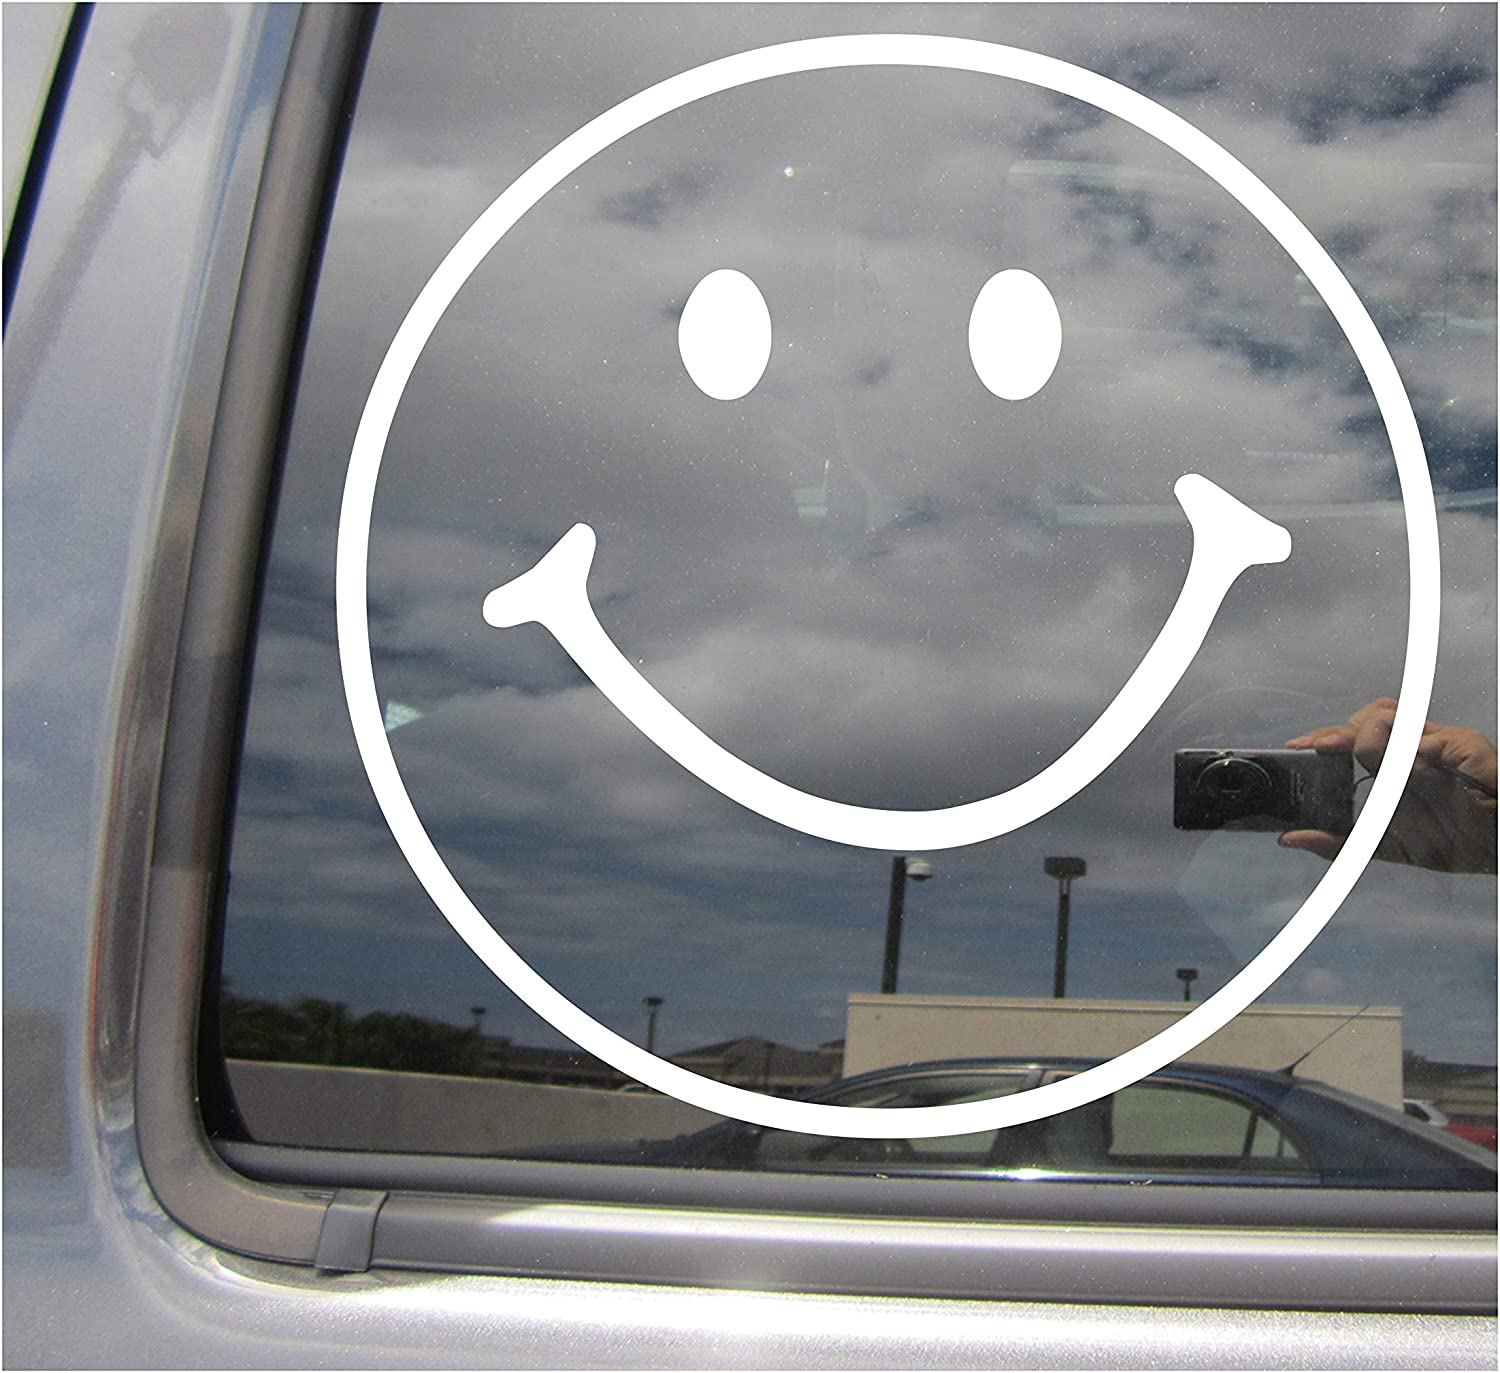 Right Now Decals - Smiley Happy Face Emoticon - Cars Trucks Moped Helmet Hard Hat Auto Automotive Craft Laptop Vinyl Decal Window Wall Sticker 10264